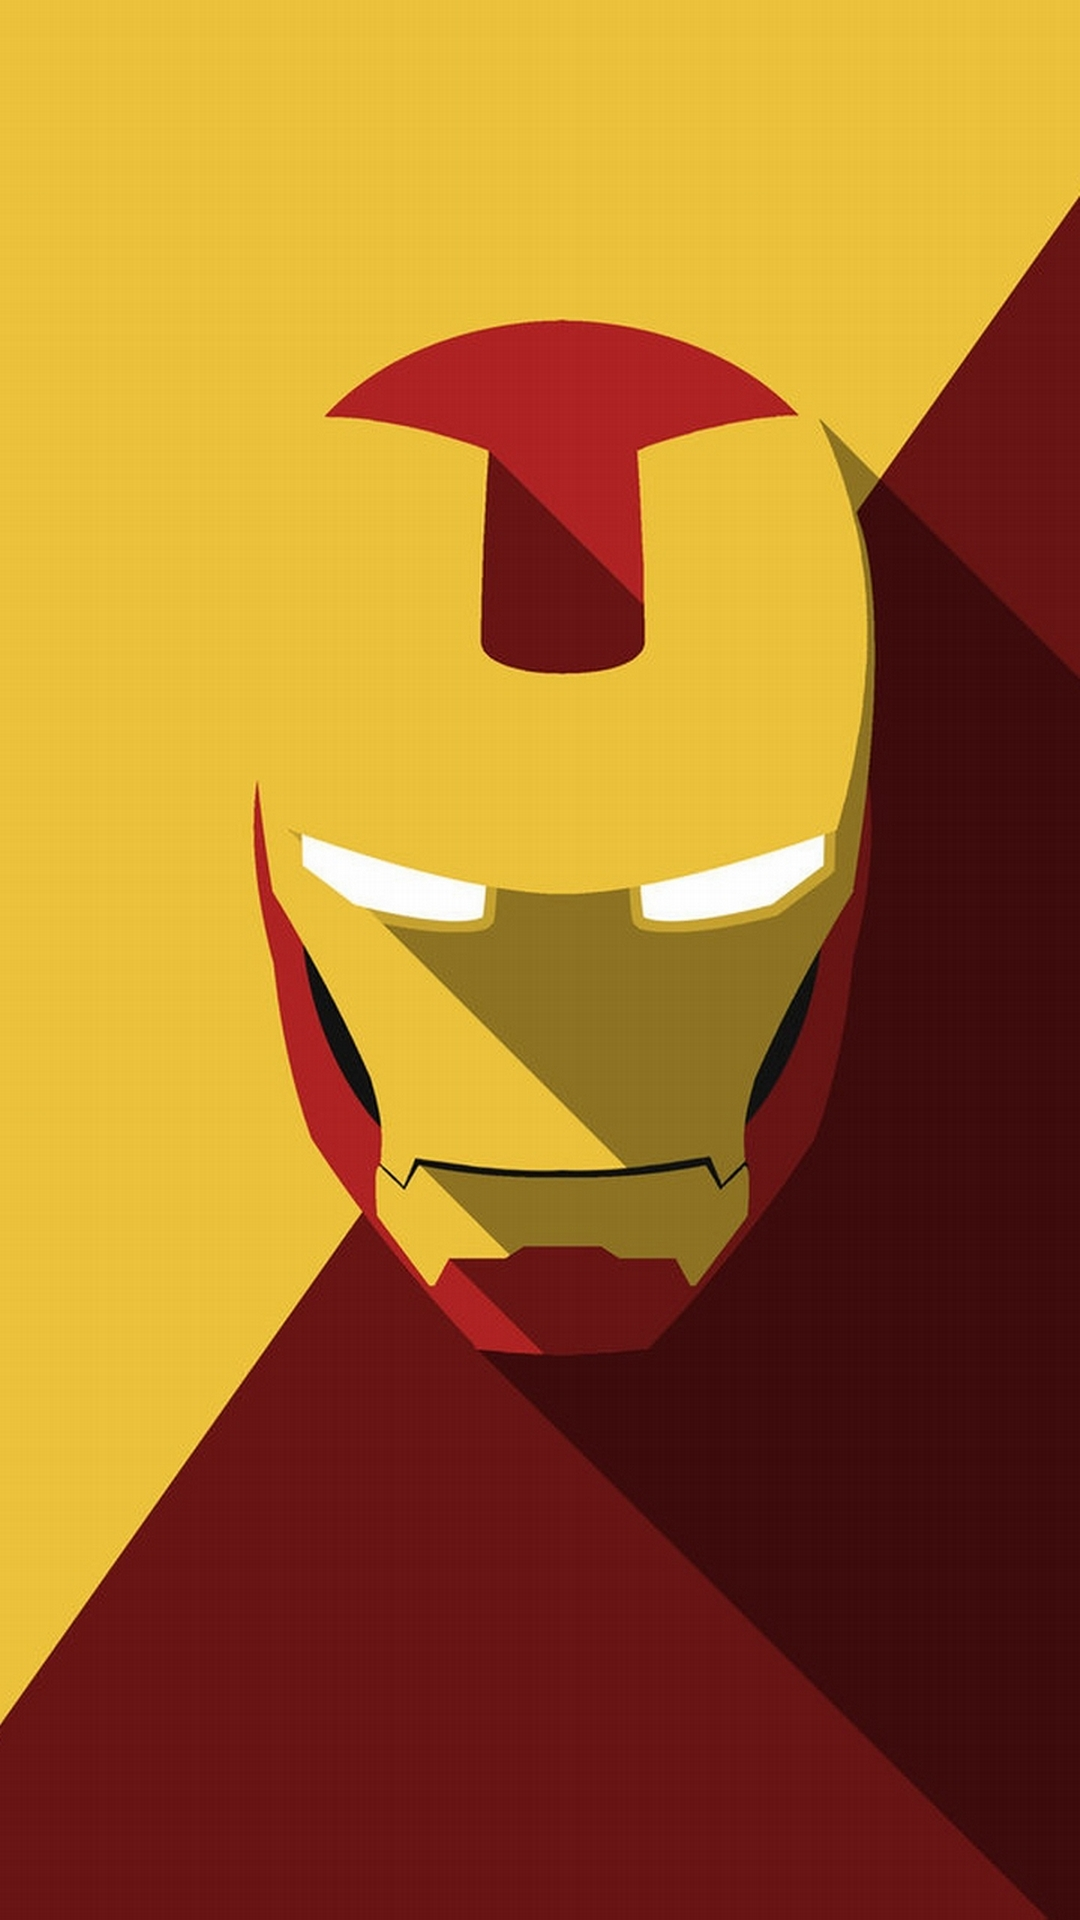 Download iron man head wallpaper gallery - Iron man wallpaper anime ...